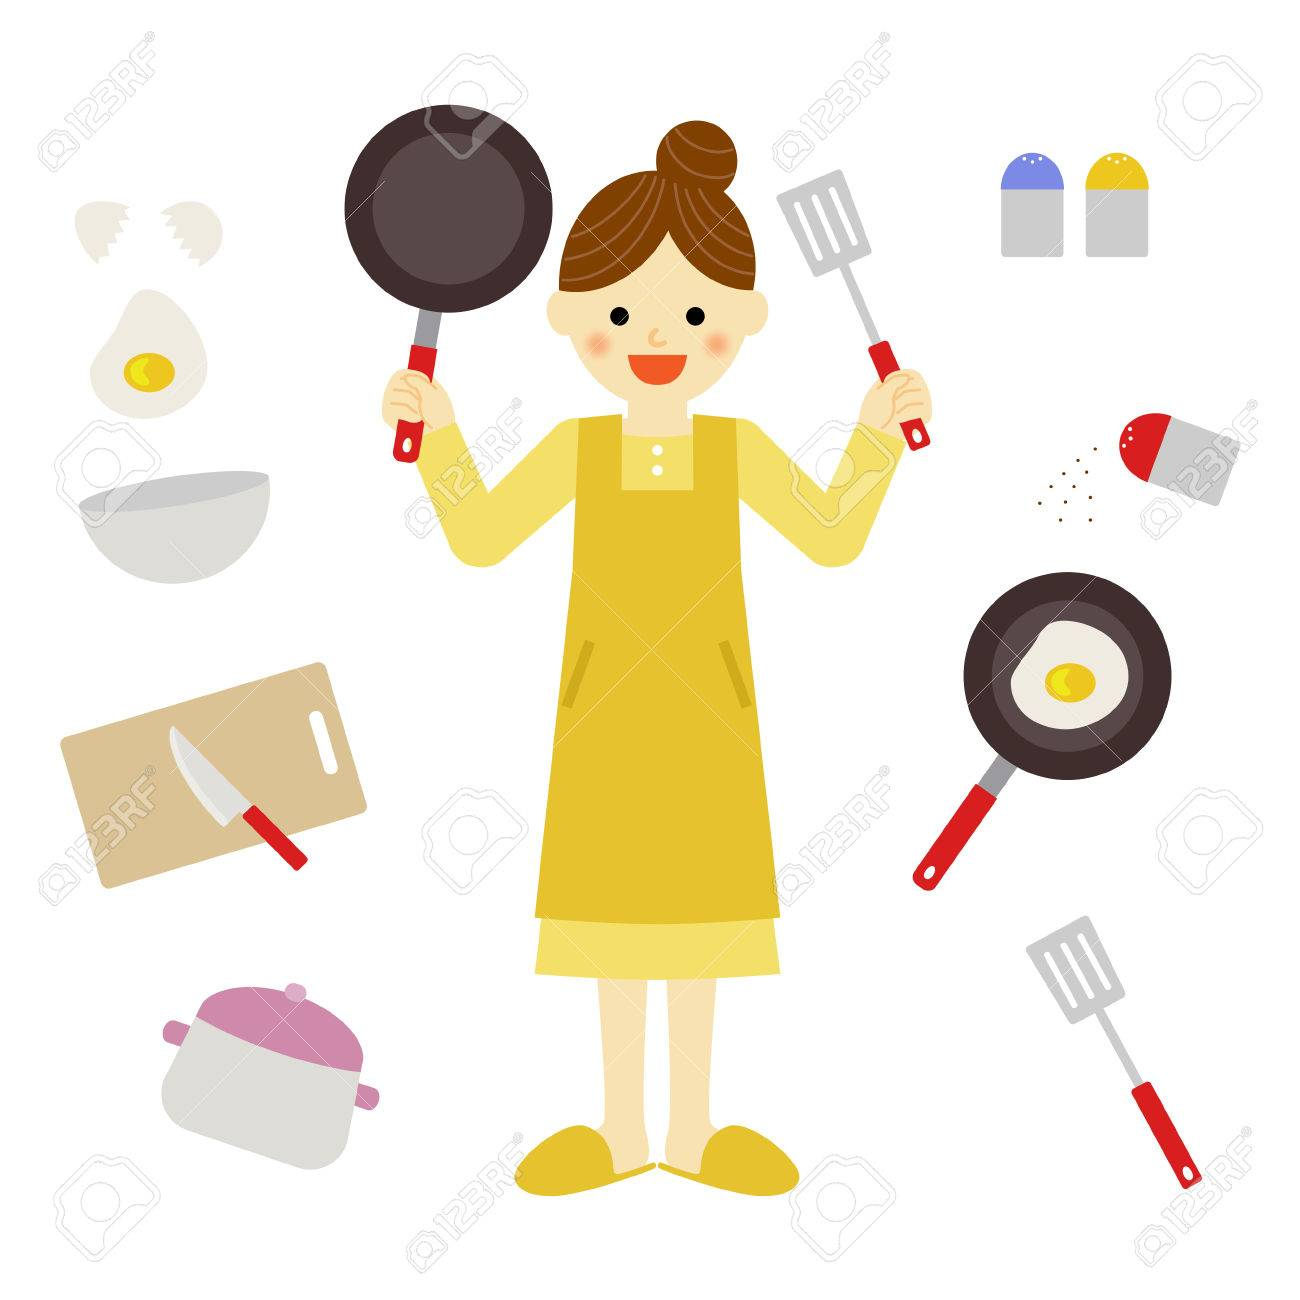 Woman And Kitchen Items Royalty Free Cliparts Vectors And Stock Illustration Image 33683770